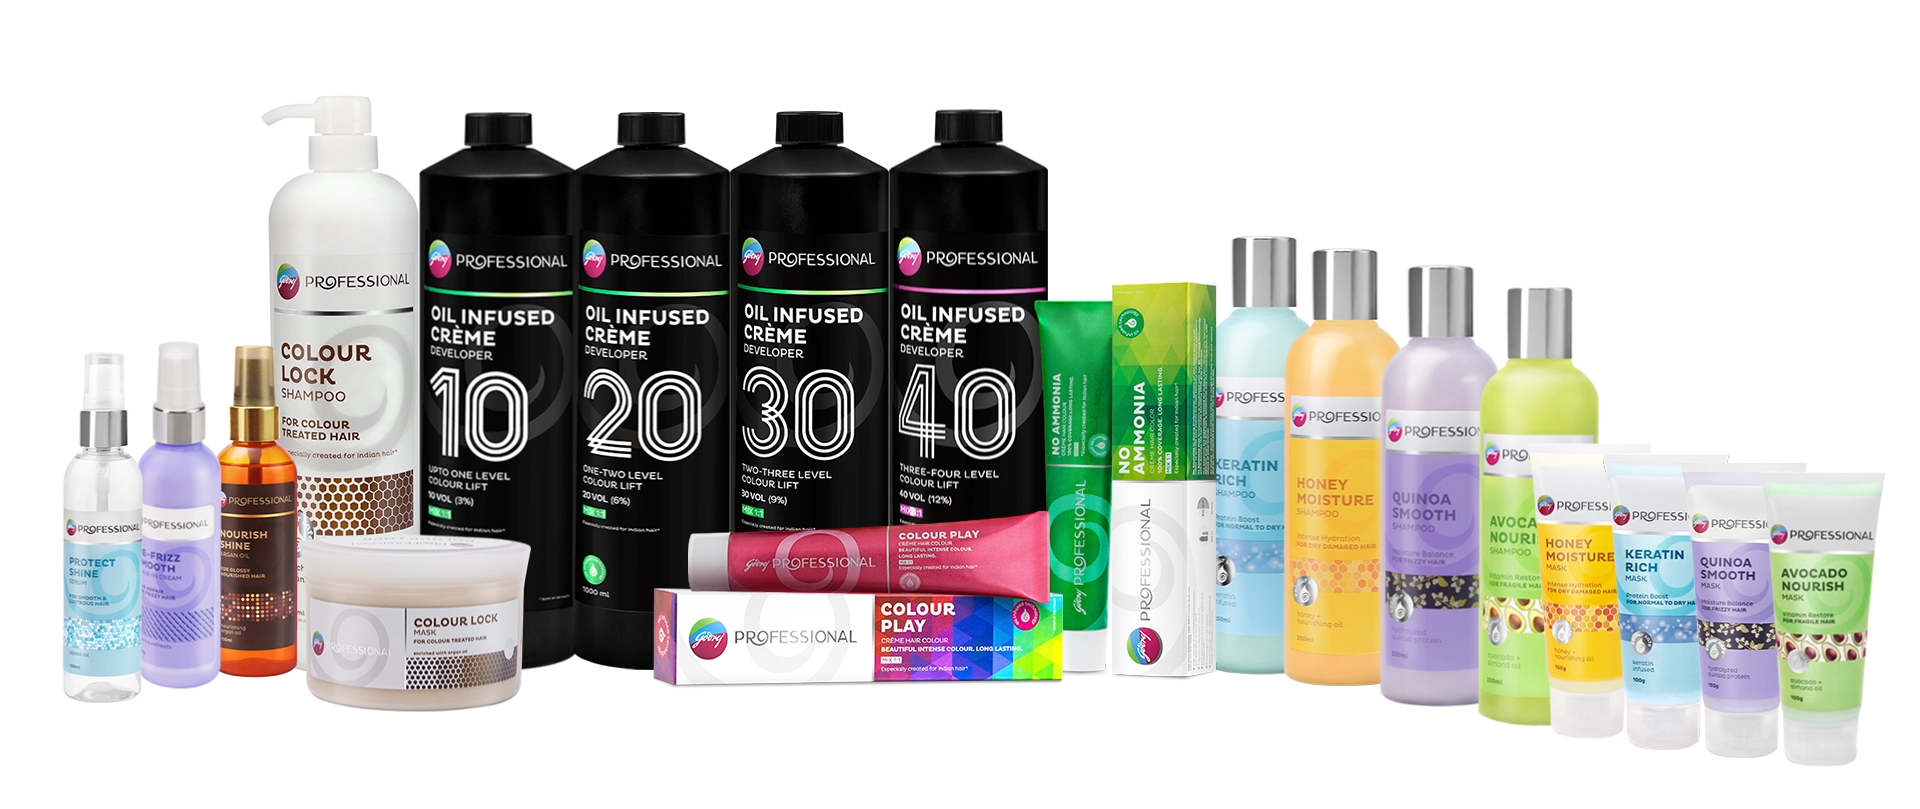 GODREJ LAUNCHES GODREJ PROFESSIONAL: FIRST EVER SALON PROFESSIONAL PRODUCT  RANGE – Urban Utopia